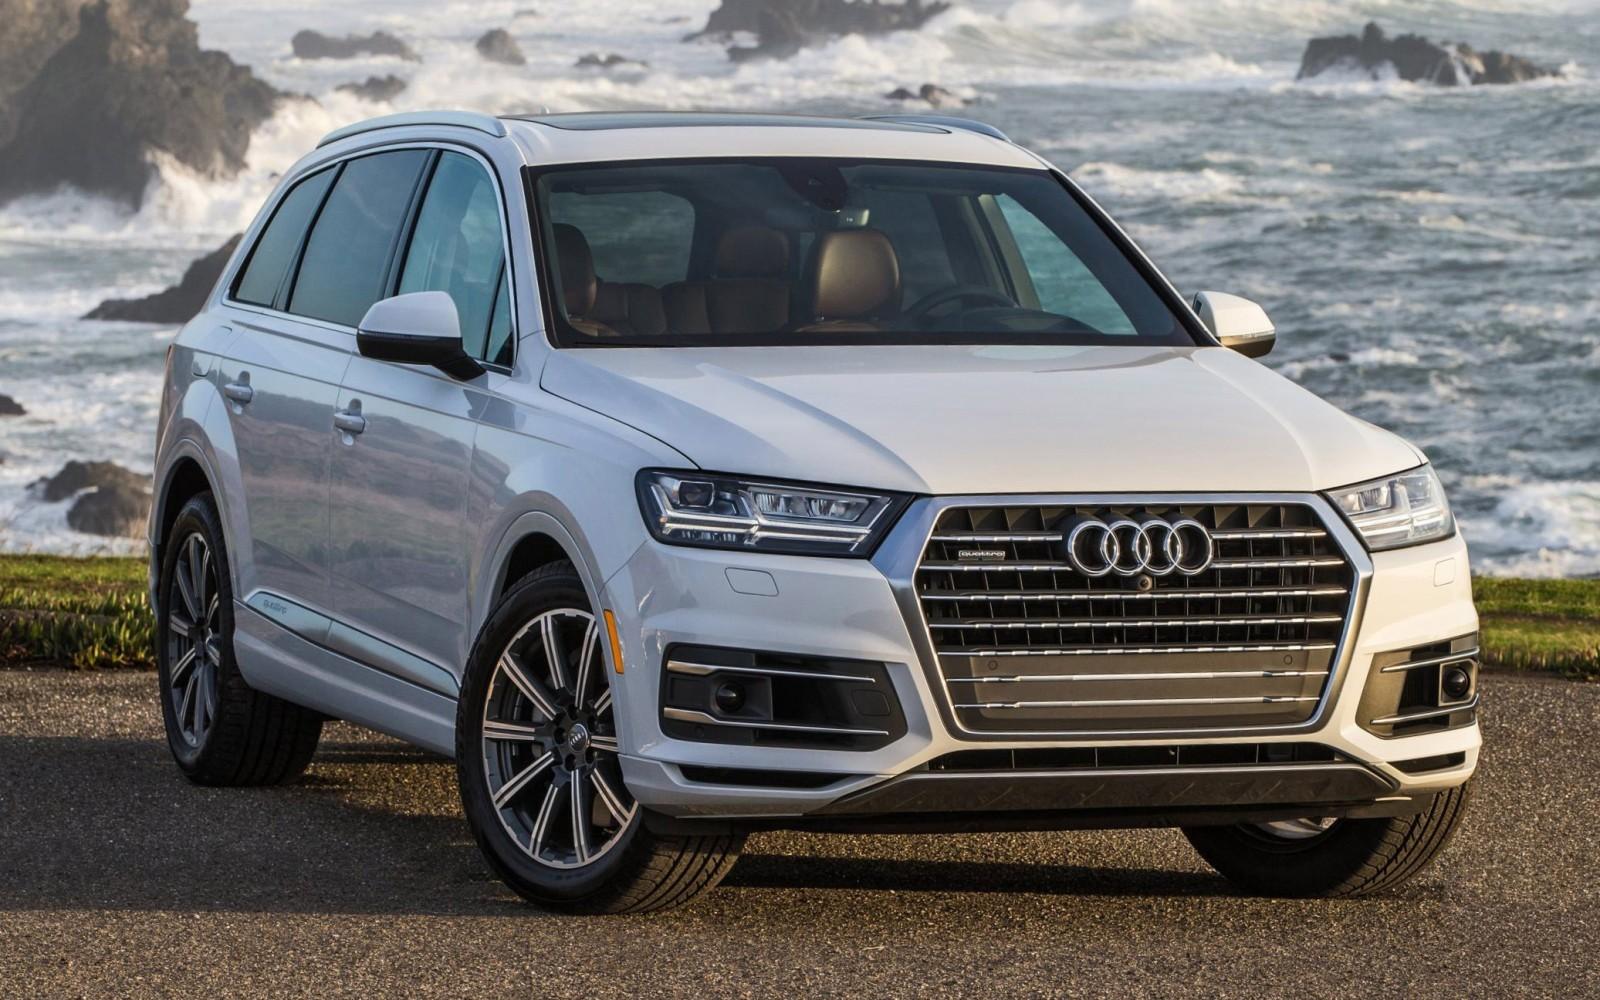 2017 Audi Q3 Towing Capacity >> 2017 Audi Q7 Visualizer - Colors, Cabins, Pricing and Options Guide